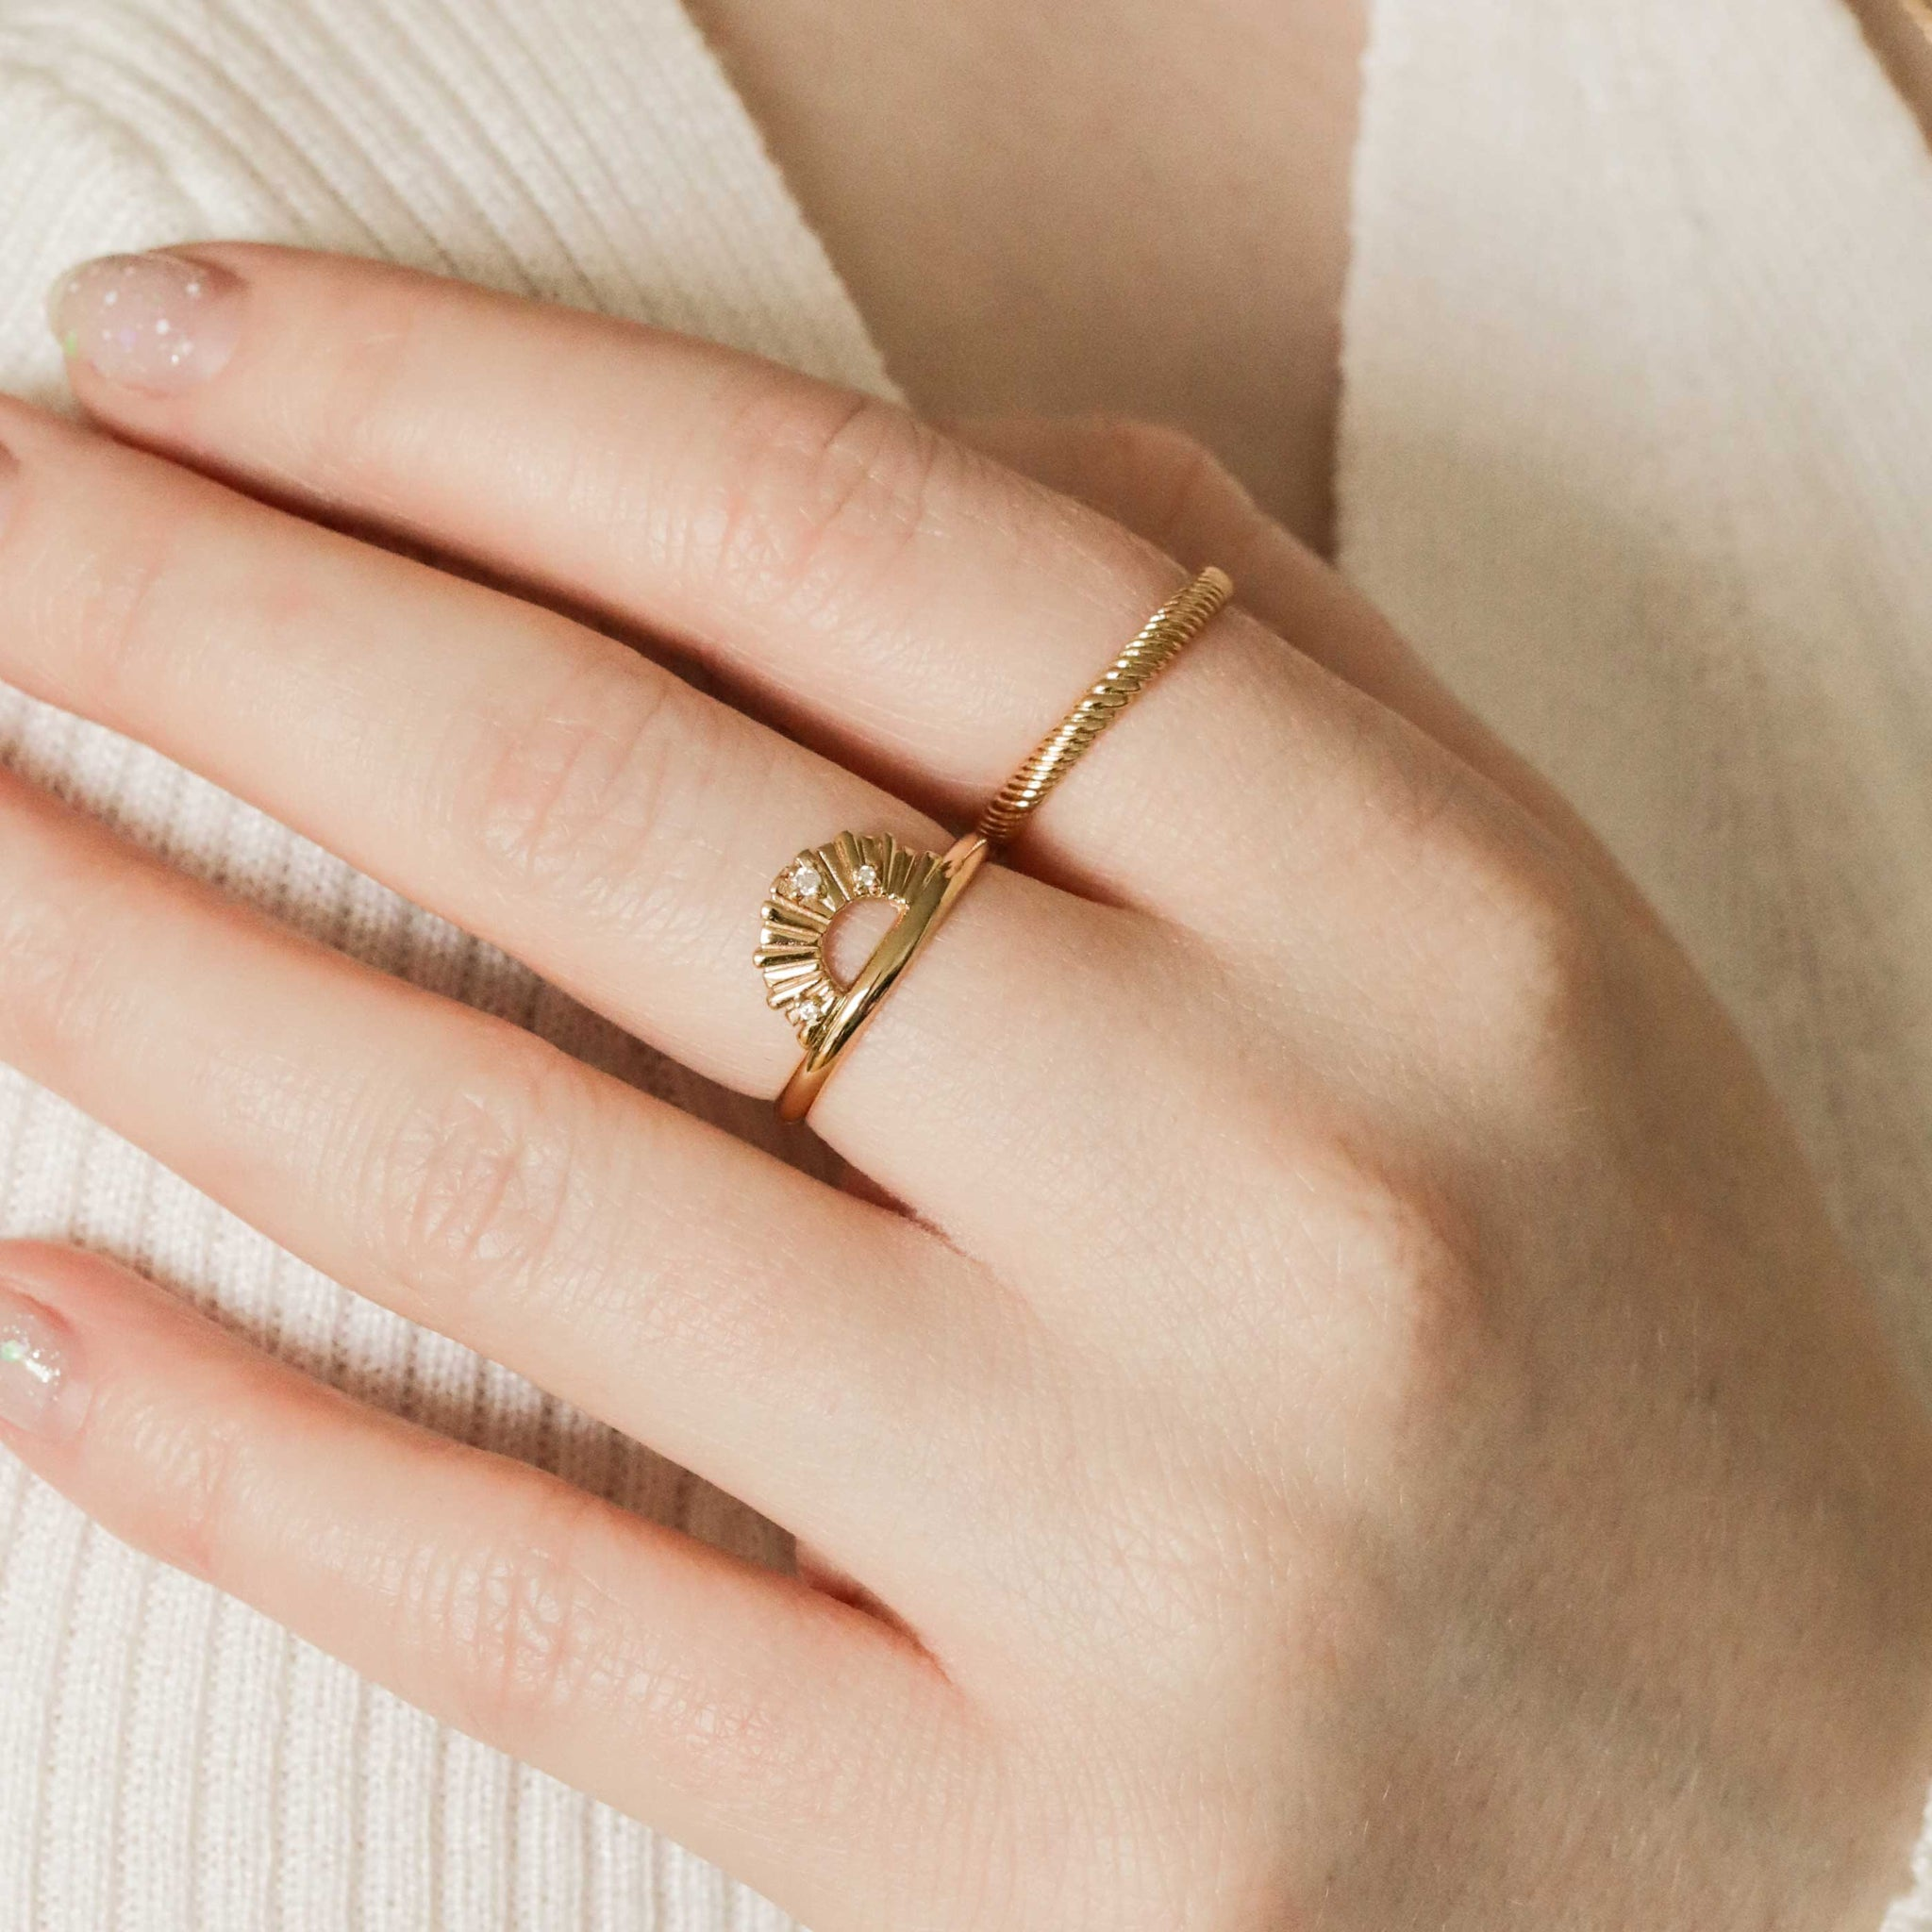 Etched Band Ring in Gold